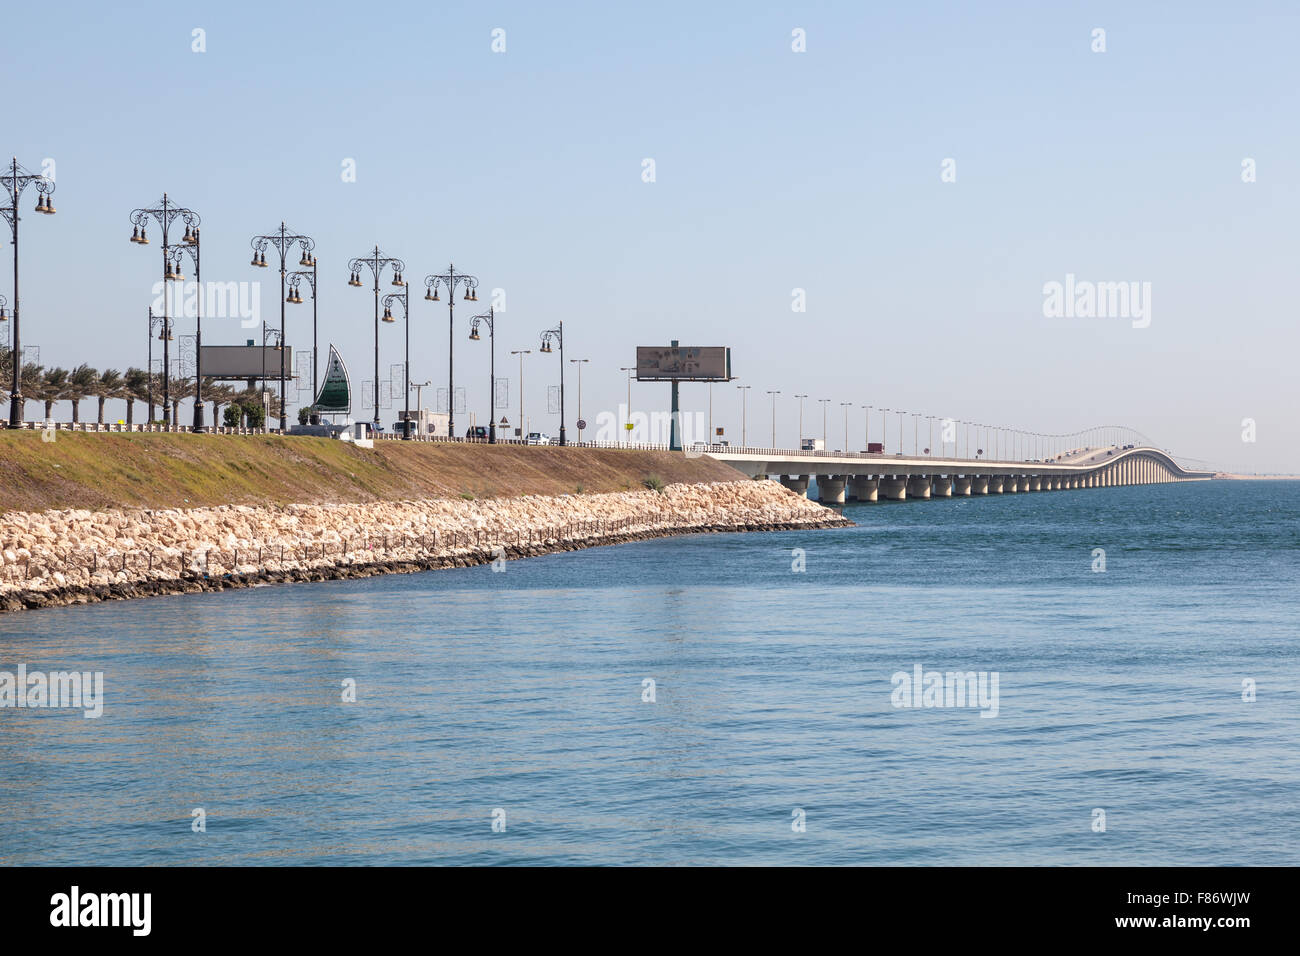 The King Fahd Causeway which connects Saudi Arabia and Bahrain. November 15, 2015 in Kingdom of Bahrain - Stock Image